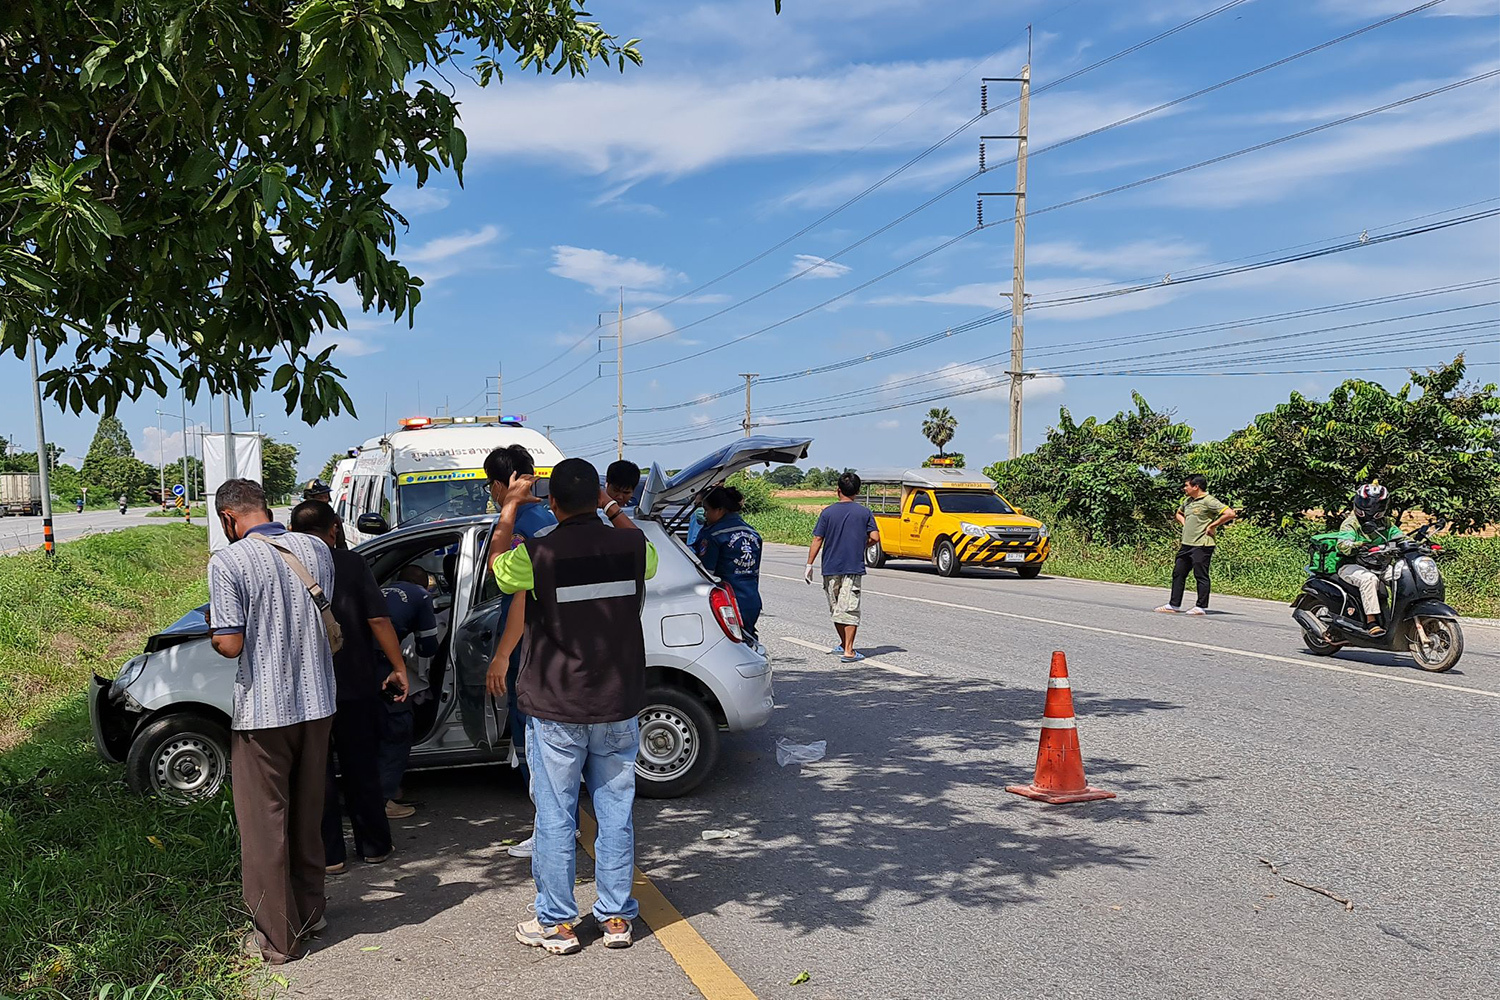 Emergency responders at the scene of the crash in Muang district of Phitsanulok on Wednesday. The driver's elderly parents were killed and his daughter seriously injured. (Photo: Chinnawat Singha)